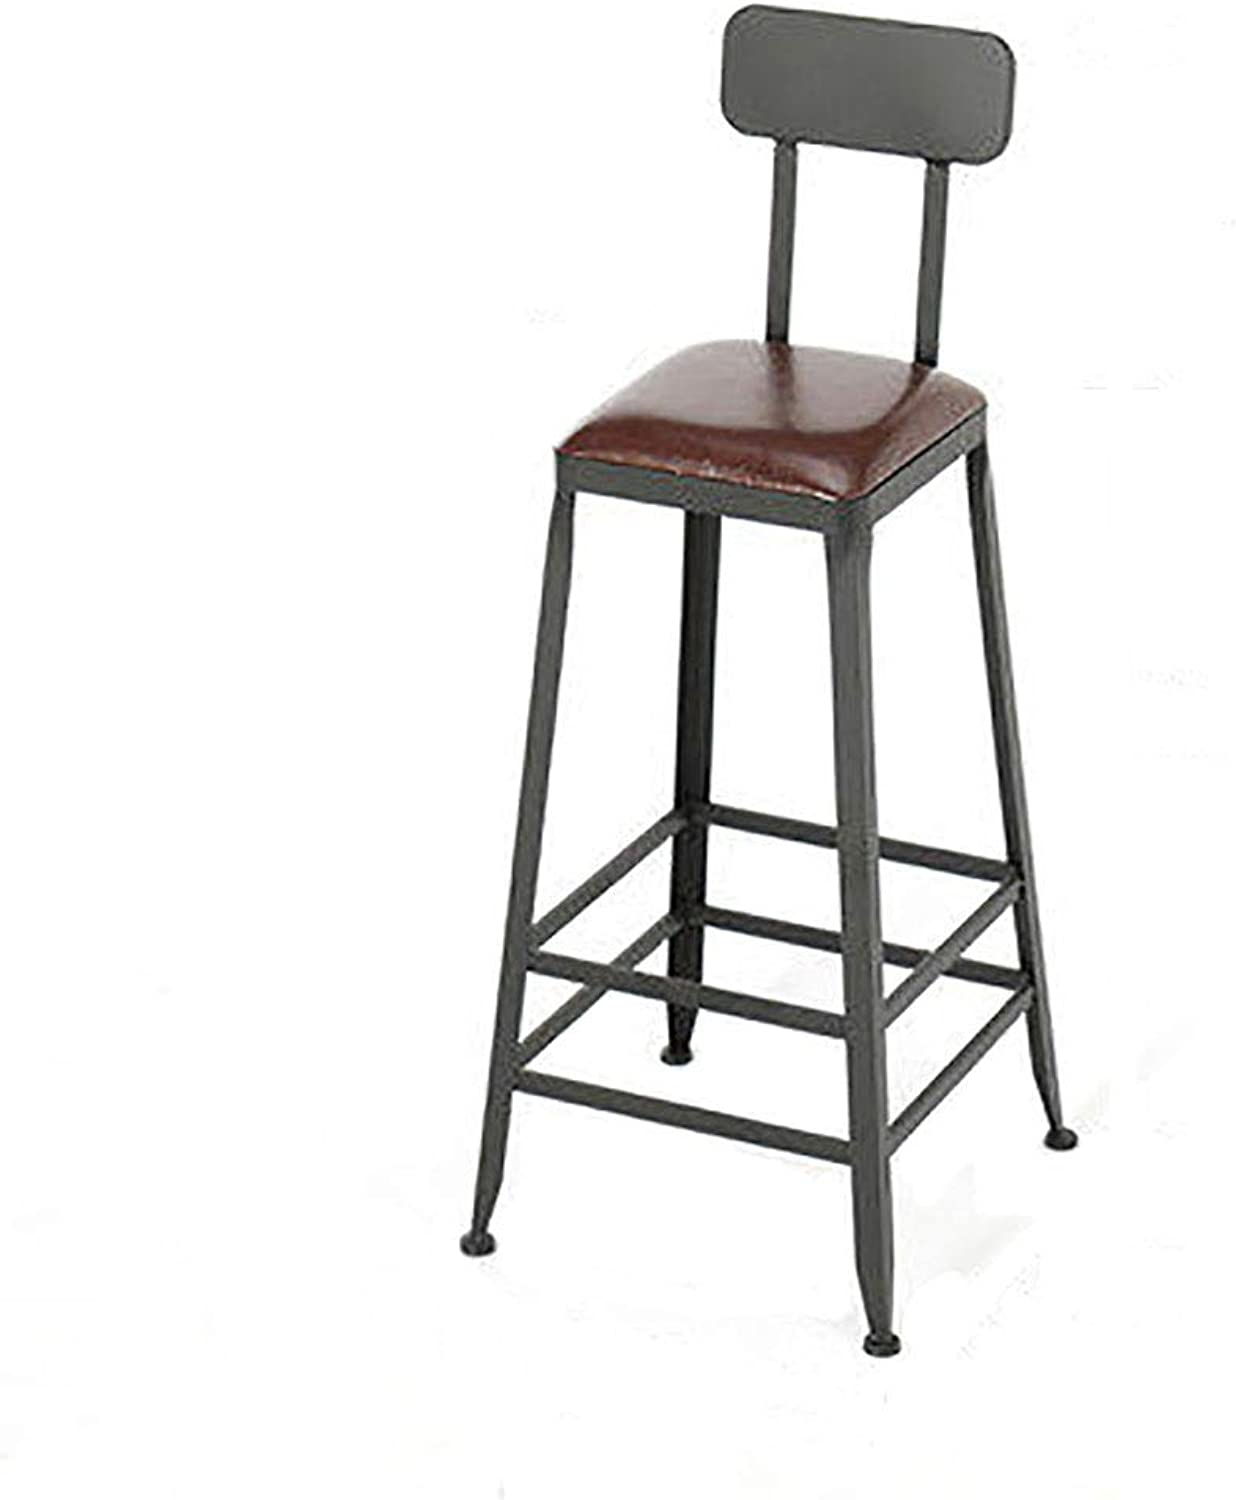 Barstools Chair Footrest with Backrest, Square Artificial Leather Seat Dining Chairs for Breakfast Restaurant Pub   Coffee Bar Stool   Max Load 200kg,Black Metal Legs   Sitting Height:65 75cm